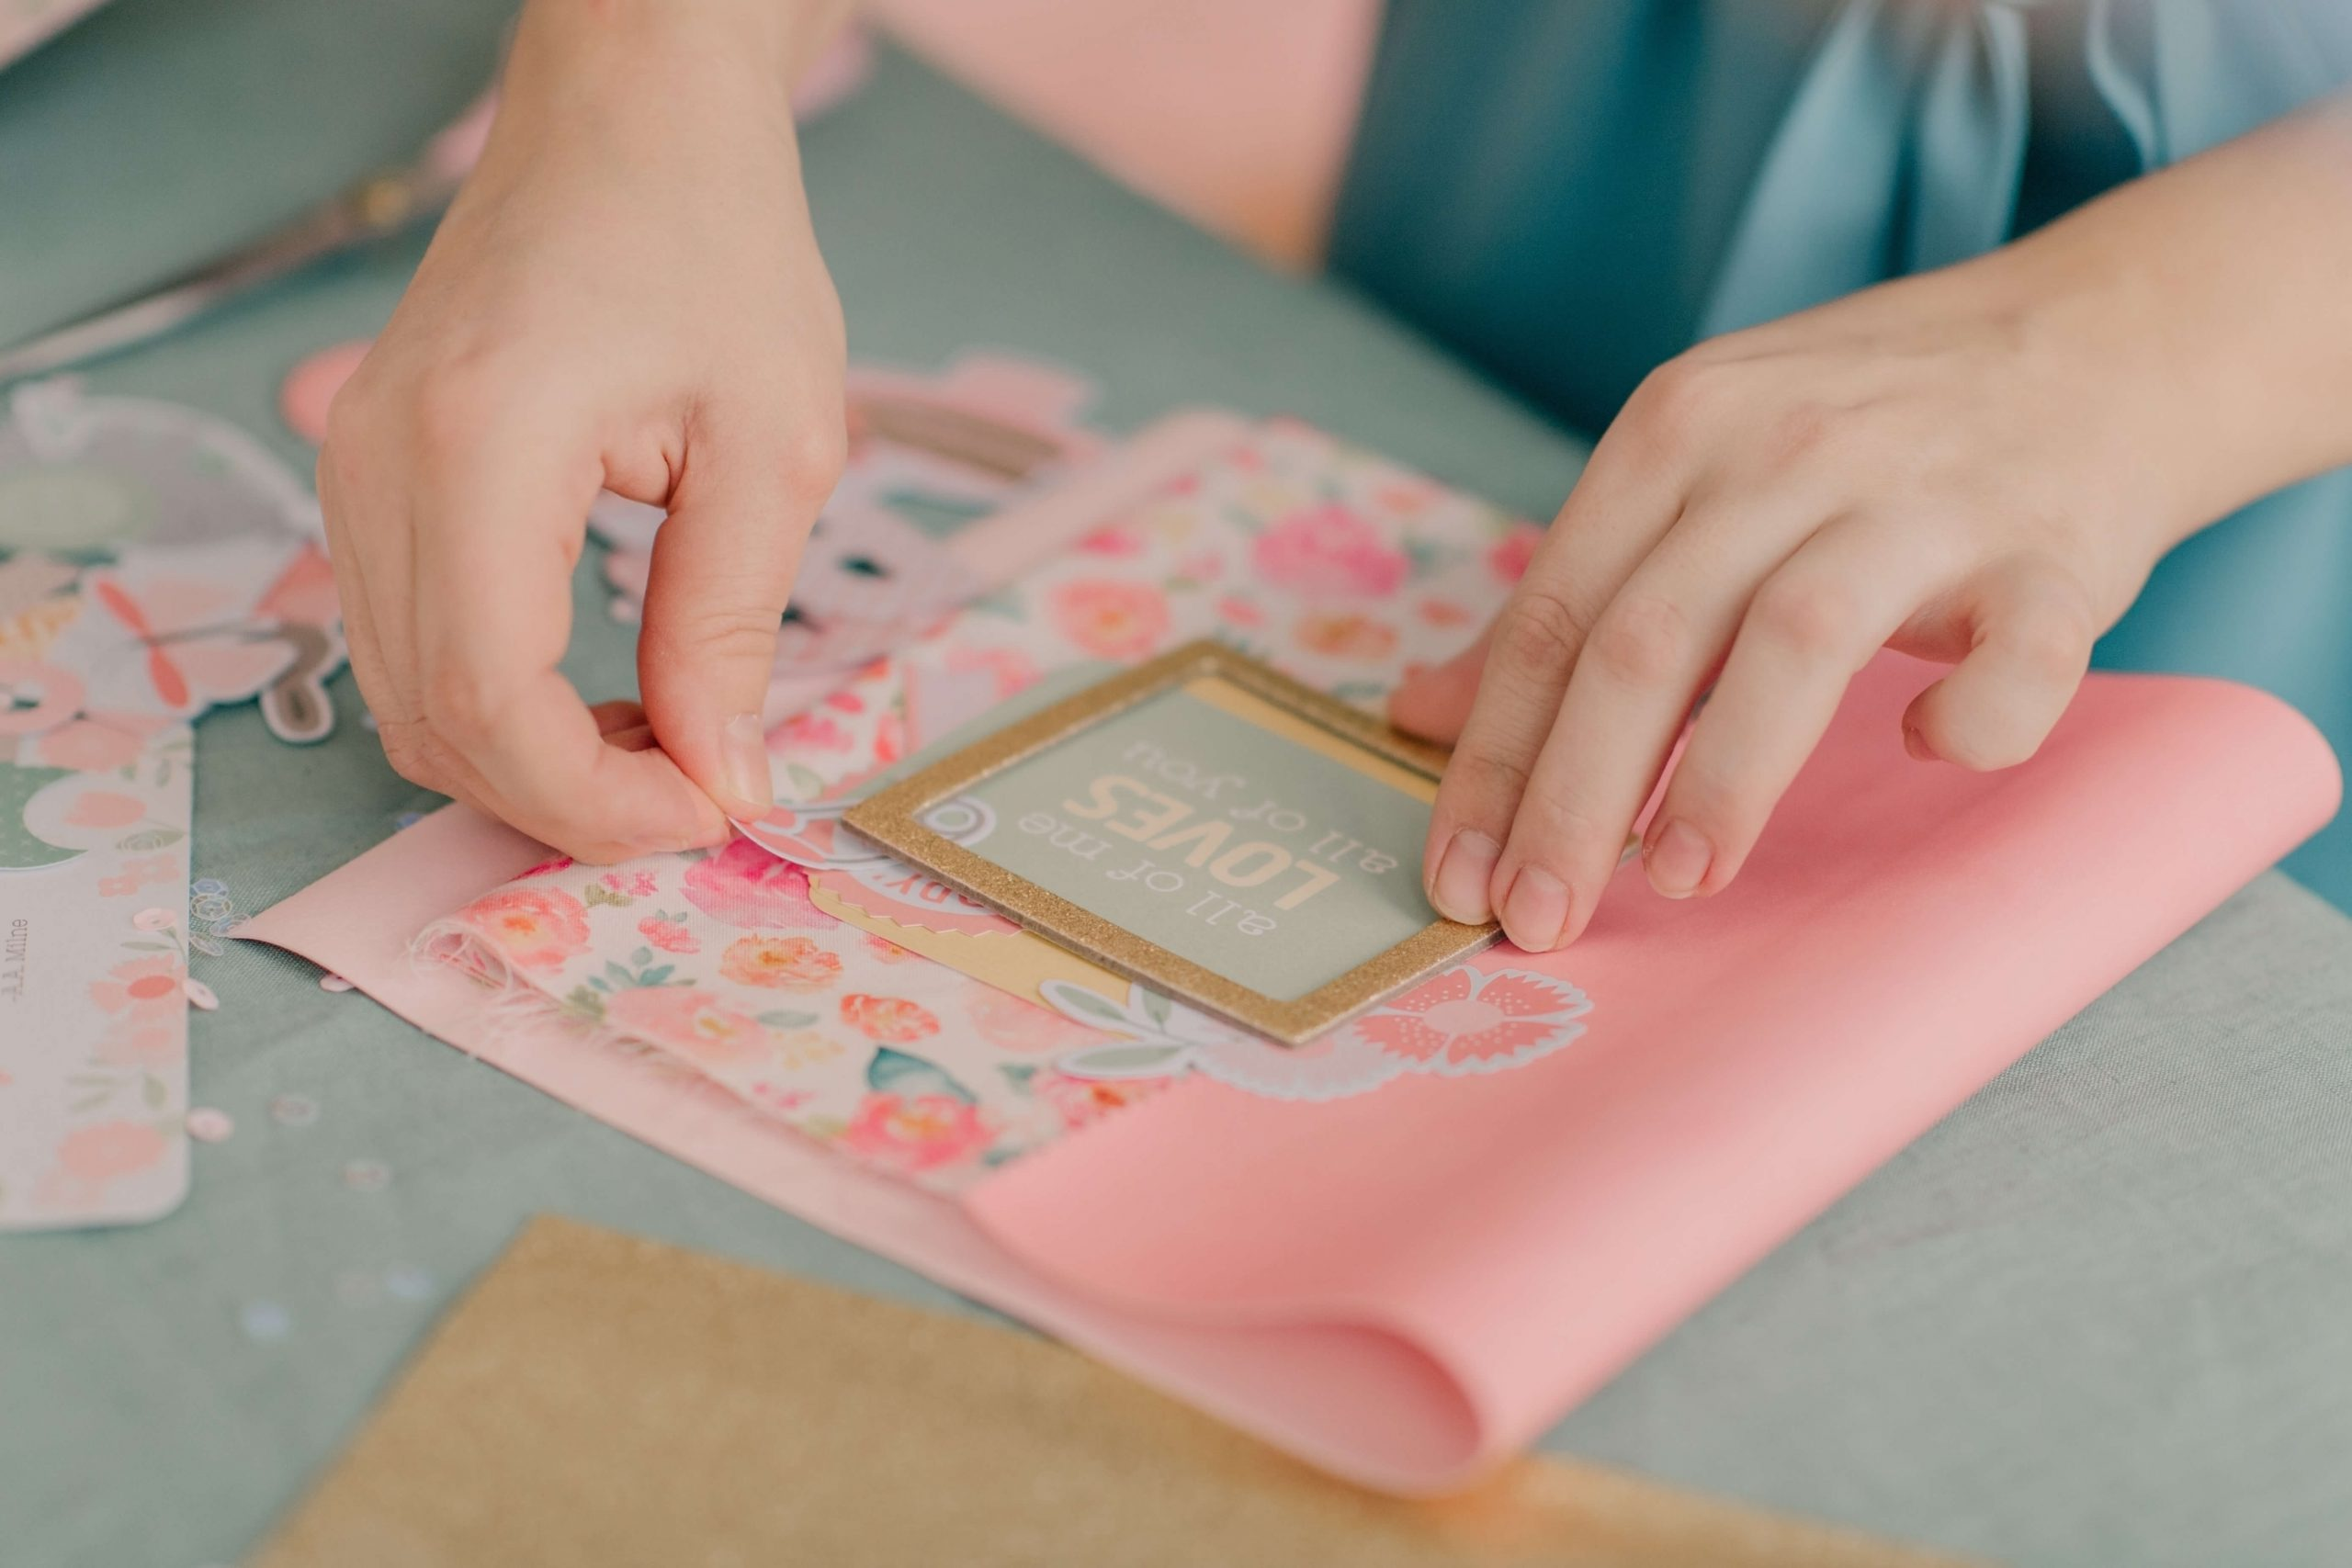 A person making a homemade card for Cards for Bravery